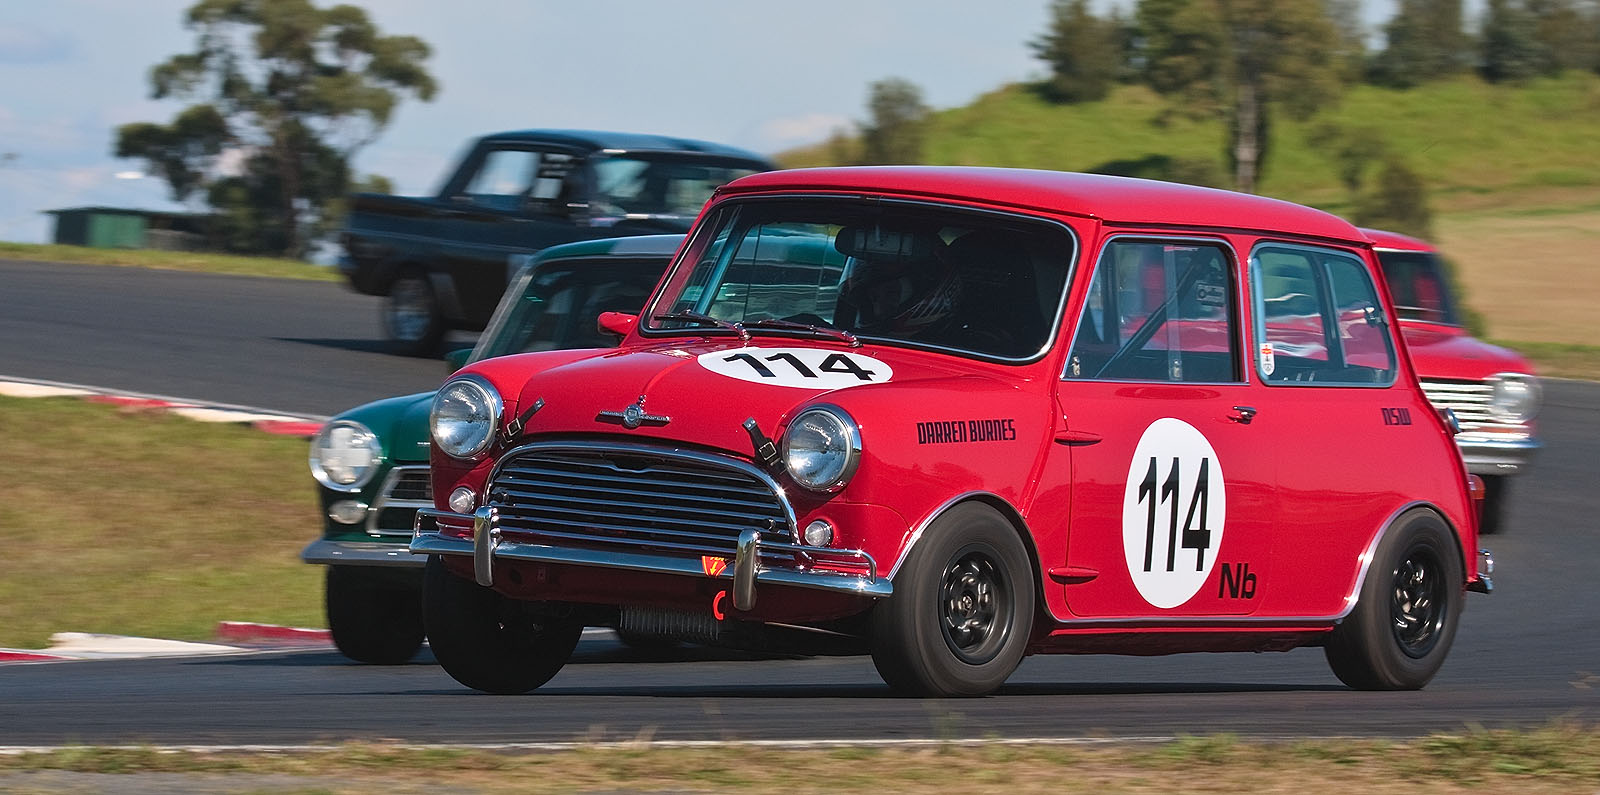 114 Darren Burnes 1964 Morris Mini Cooper S | Flickr - Photo Sharing!